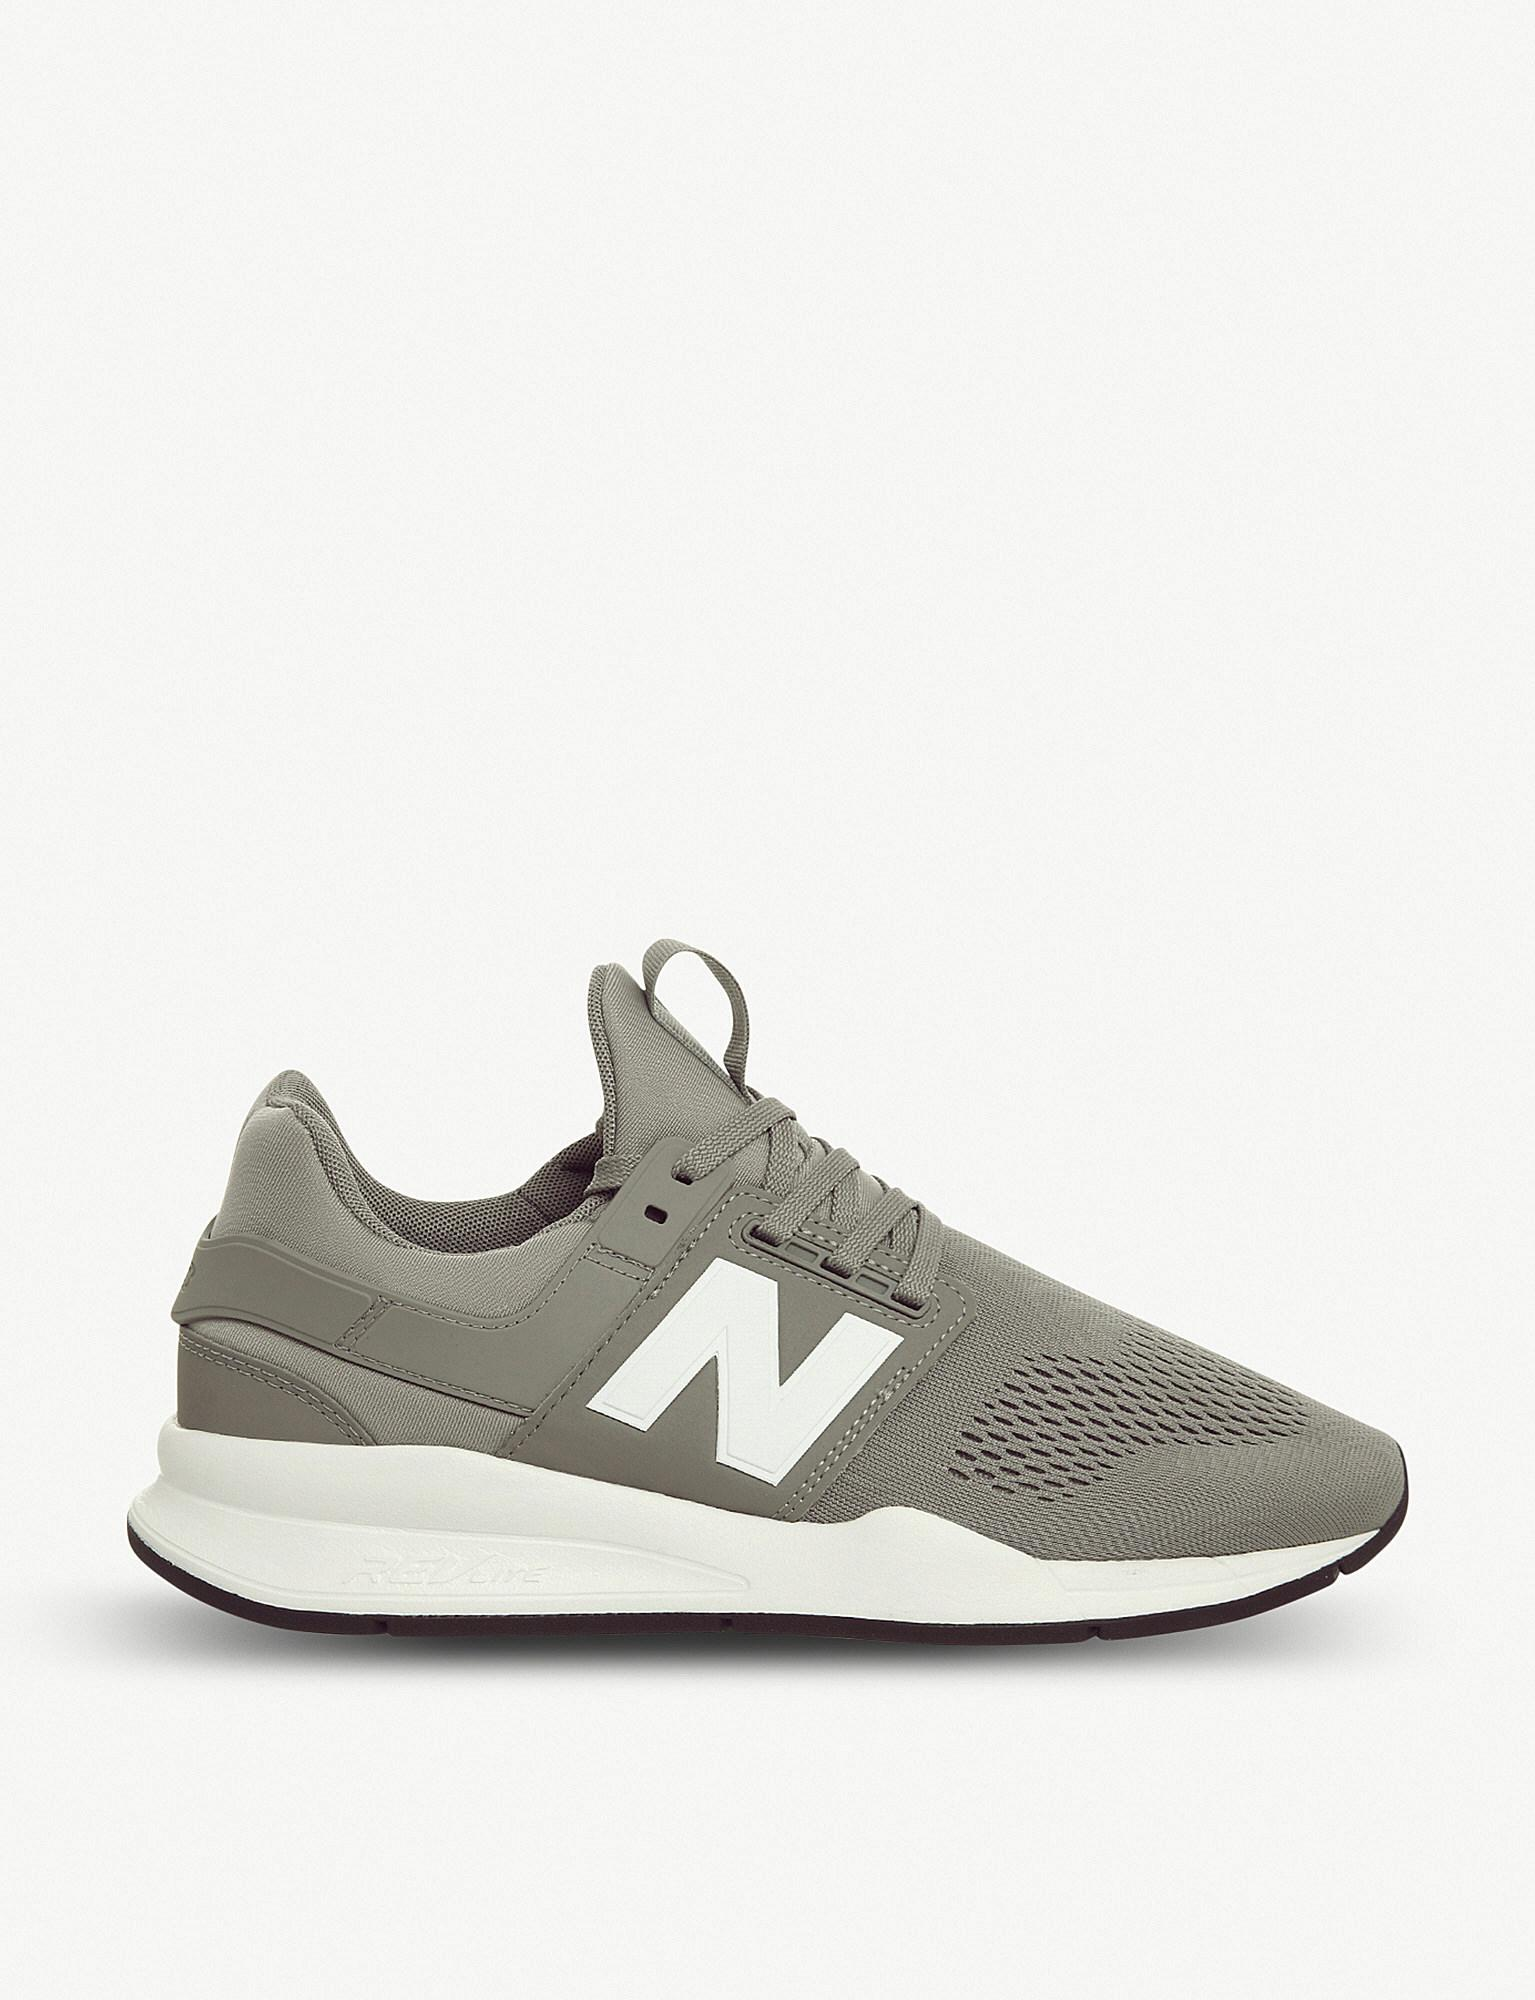 New Balance 247v2 Leather And Mesh Trainers in Gray for Men - Lyst 3697c282994f4